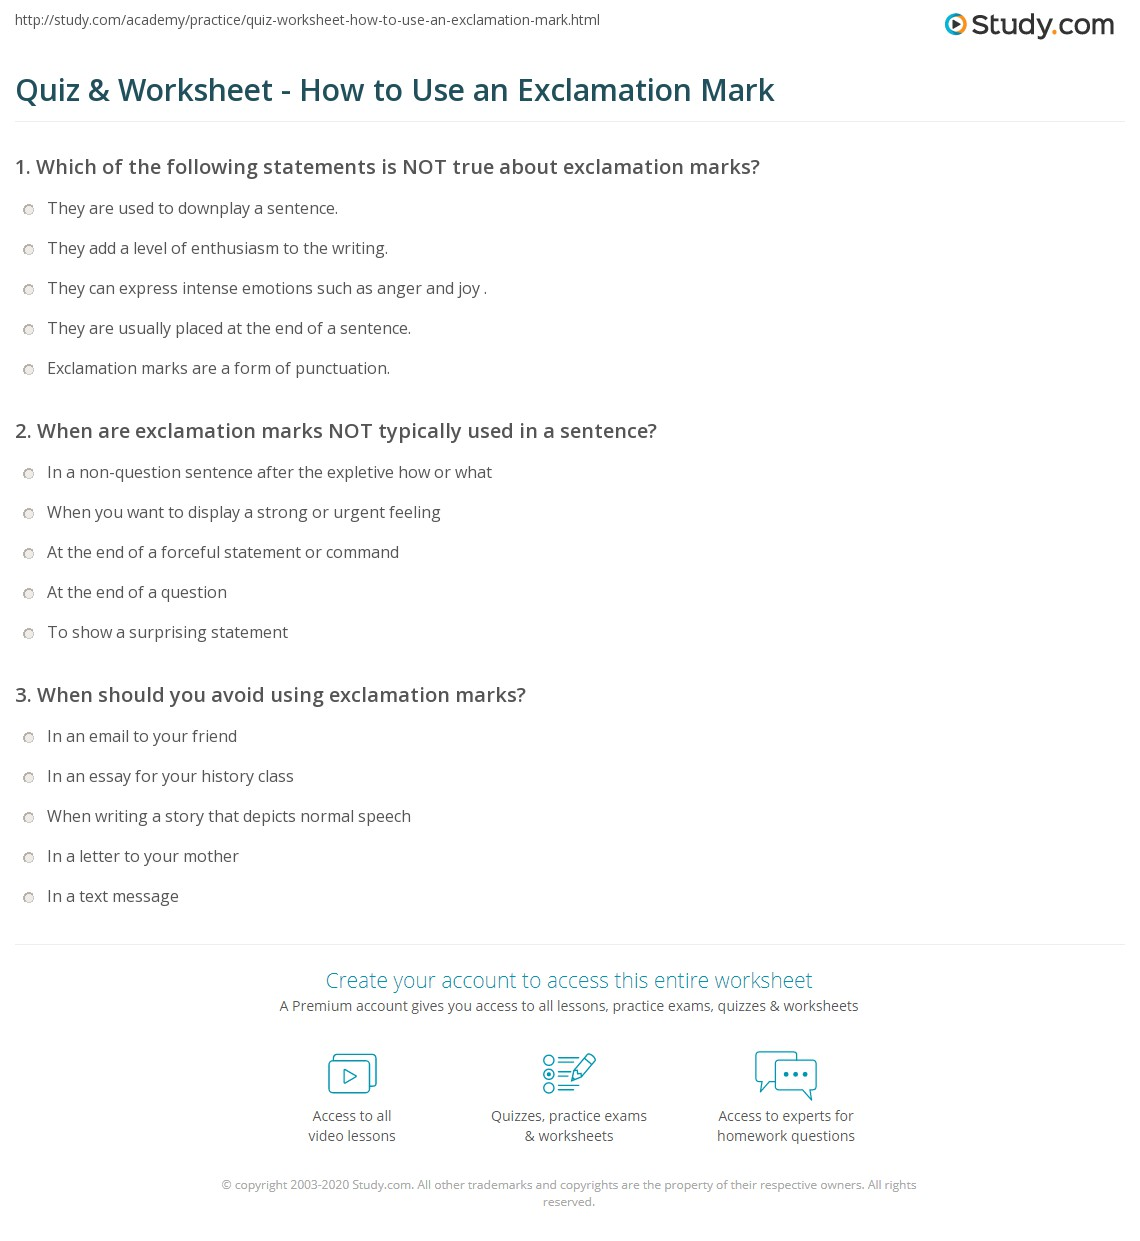 hight resolution of Quiz \u0026 Worksheet - How to Use an Exclamation Mark   Study.com